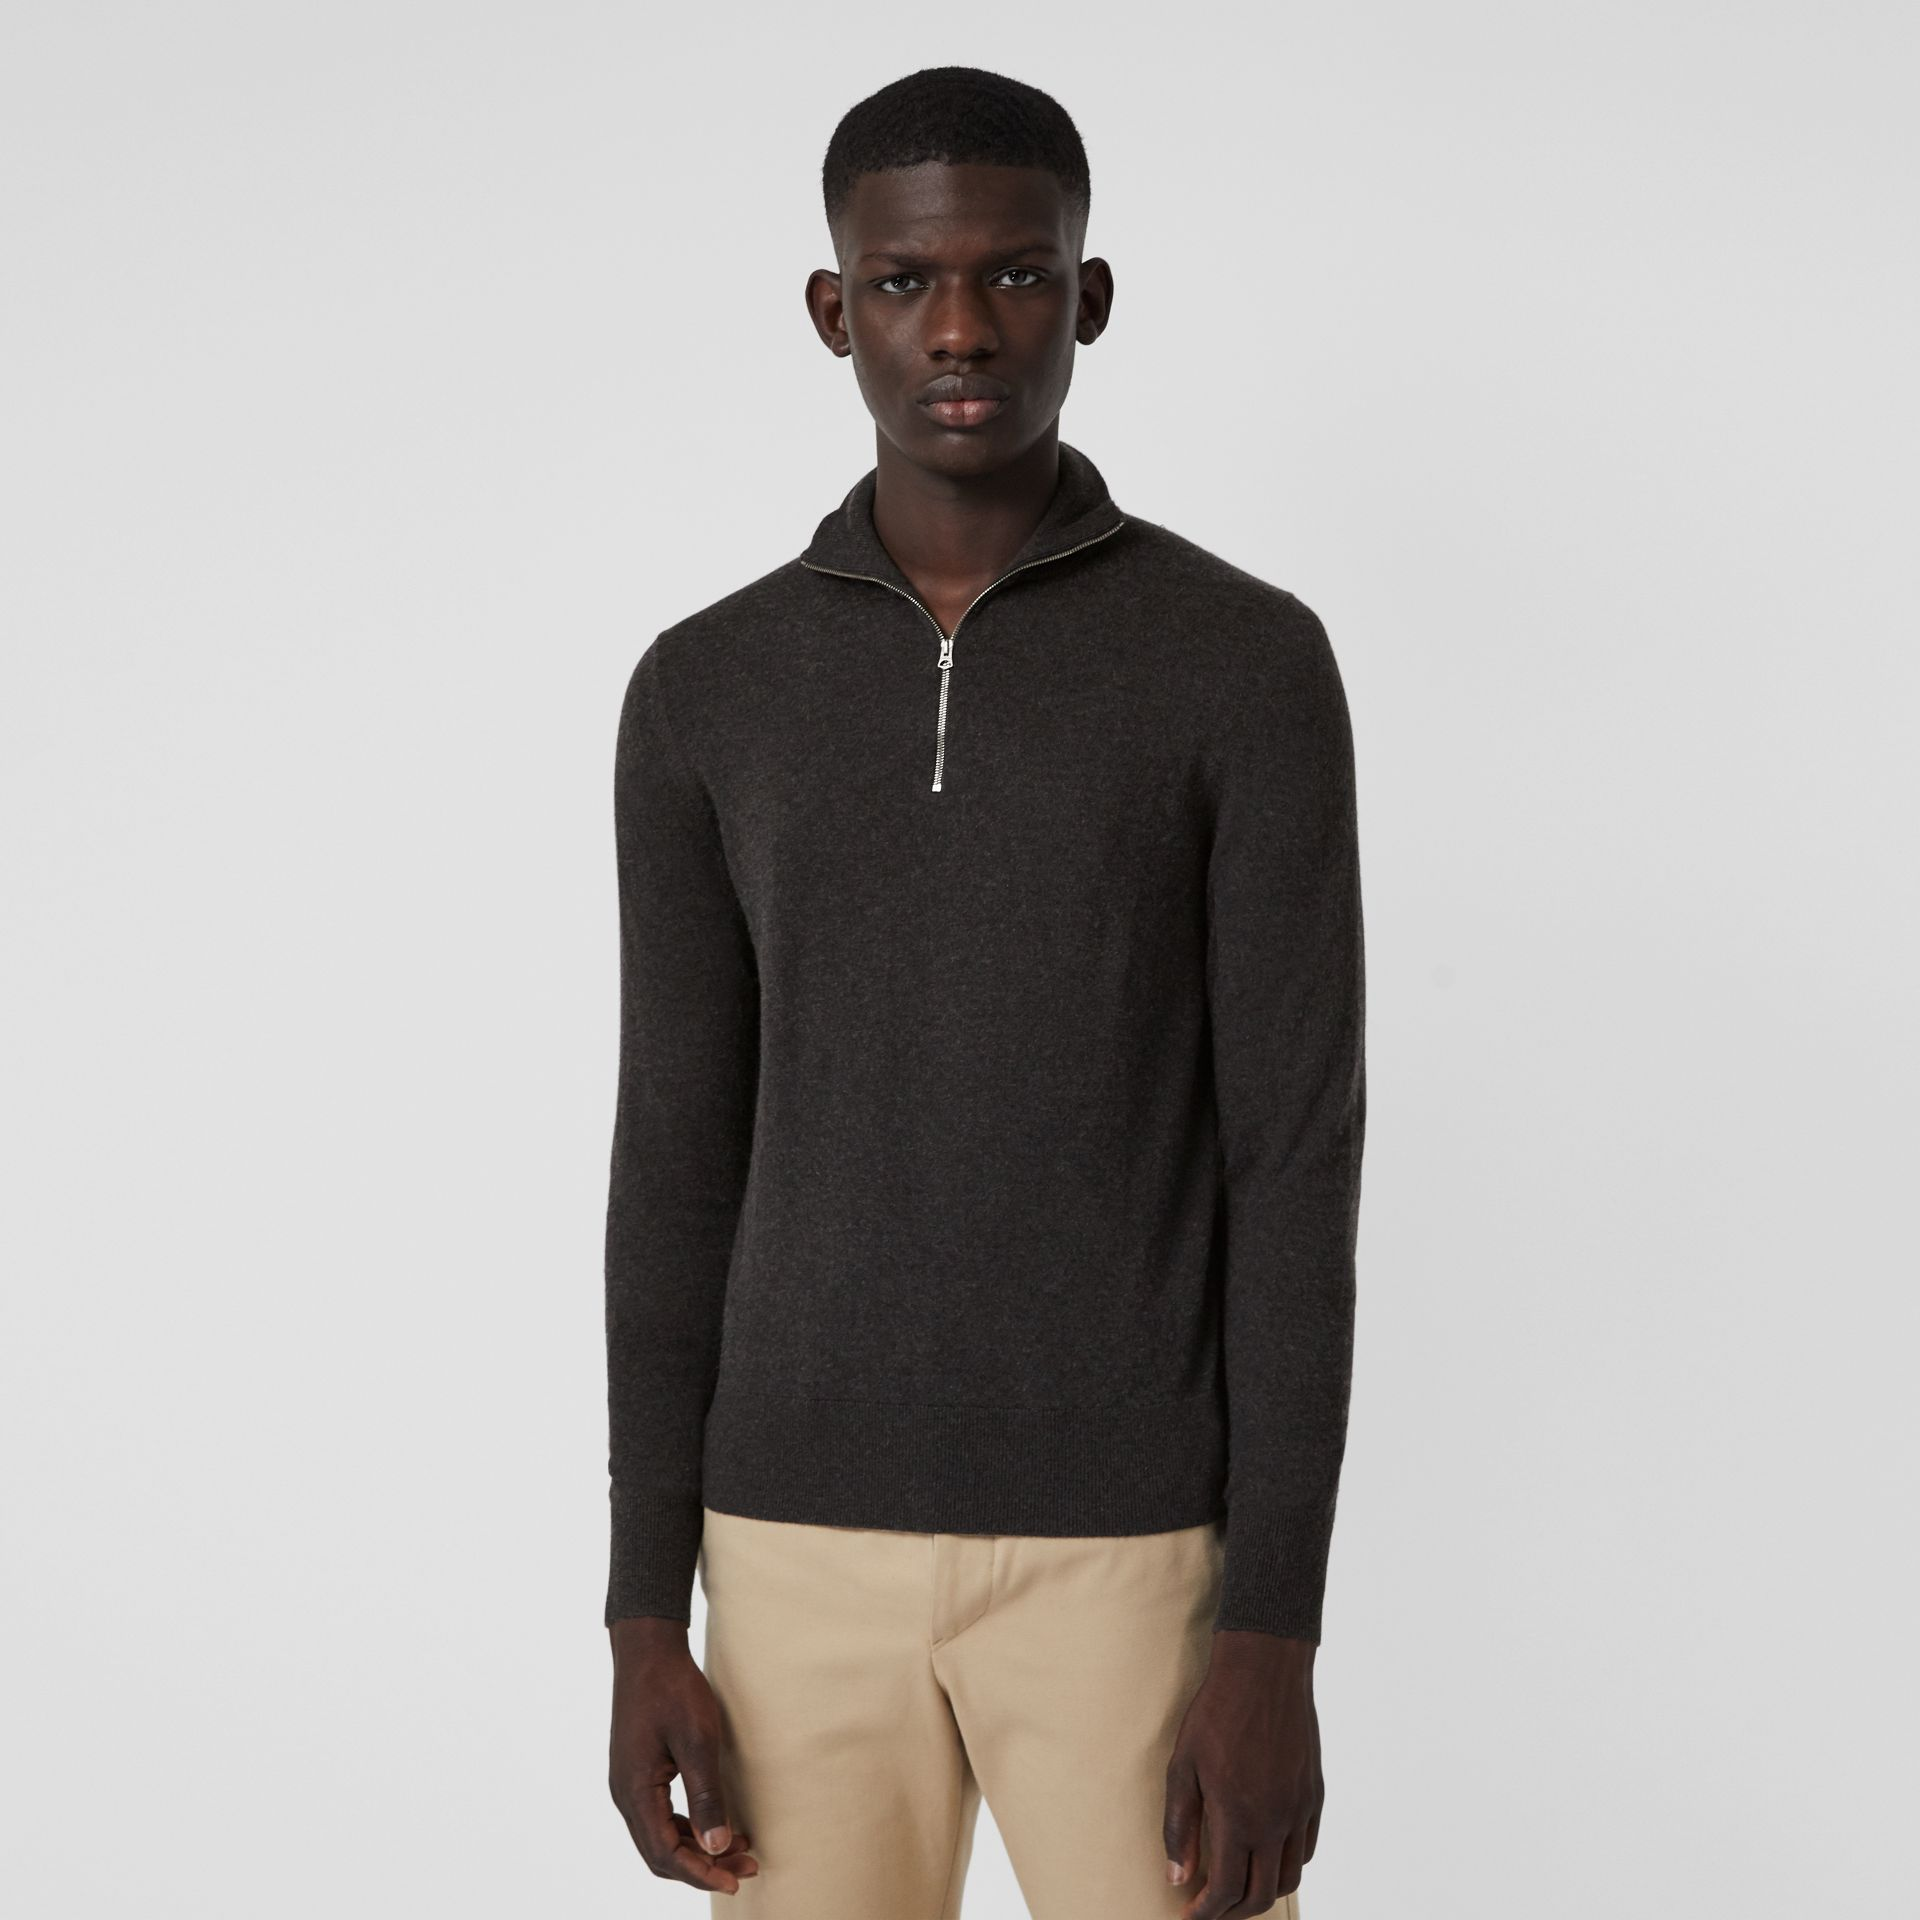 Zip-neck Cashmere Cotton Sweater in Charcoal - Men | Burberry United States - gallery image 4